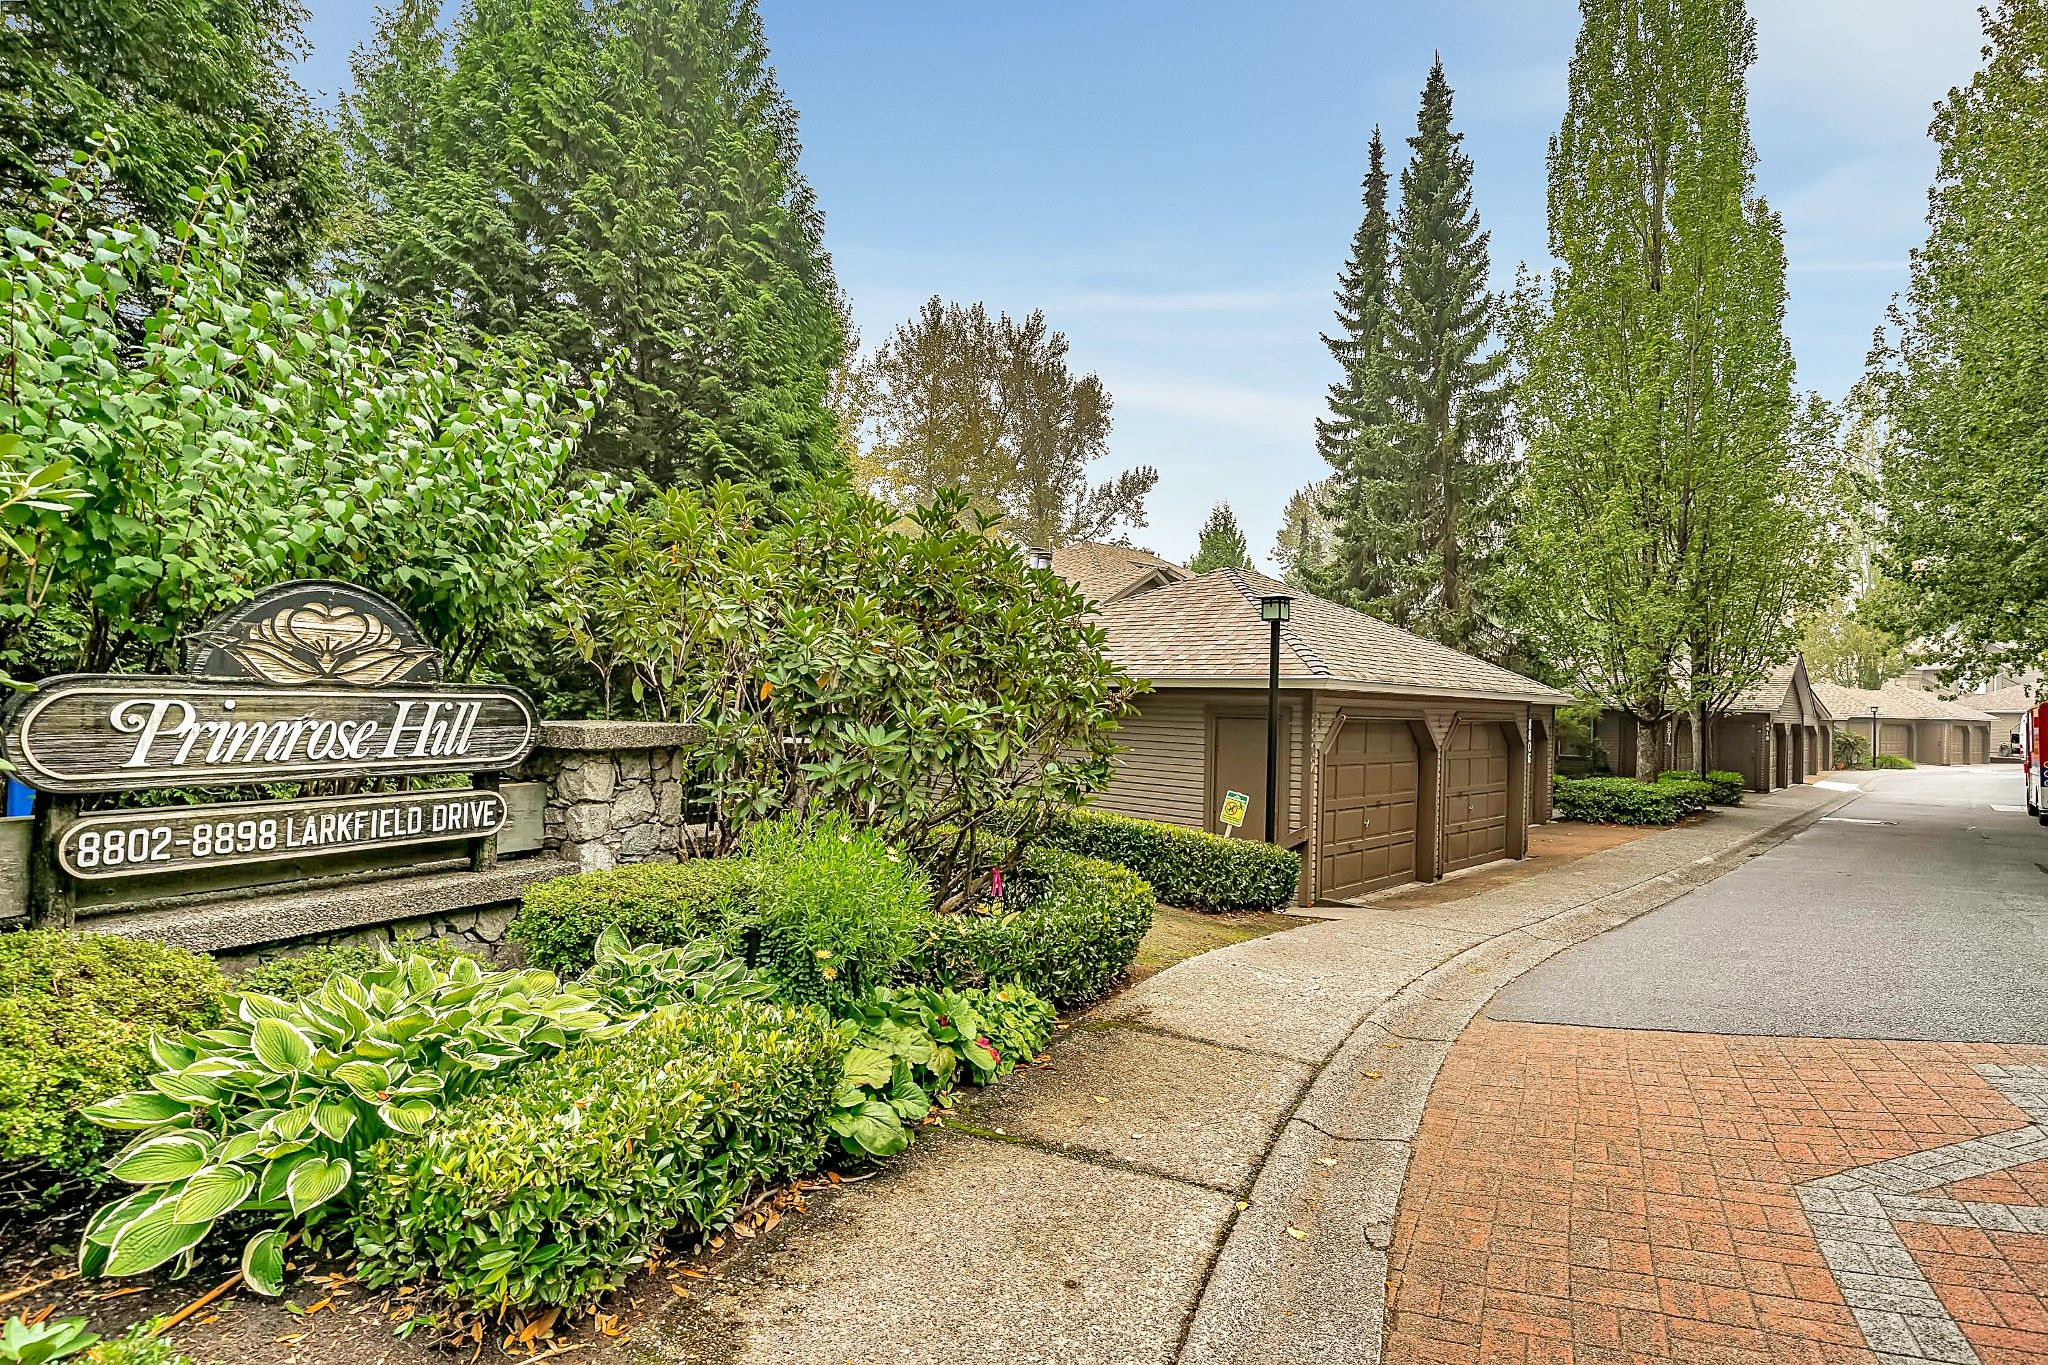 """Main Photo: 8834 LARKFIELD Drive in Burnaby: Forest Hills BN Townhouse for sale in """"Primrose Hill"""" (Burnaby North)  : MLS®# R2498974"""